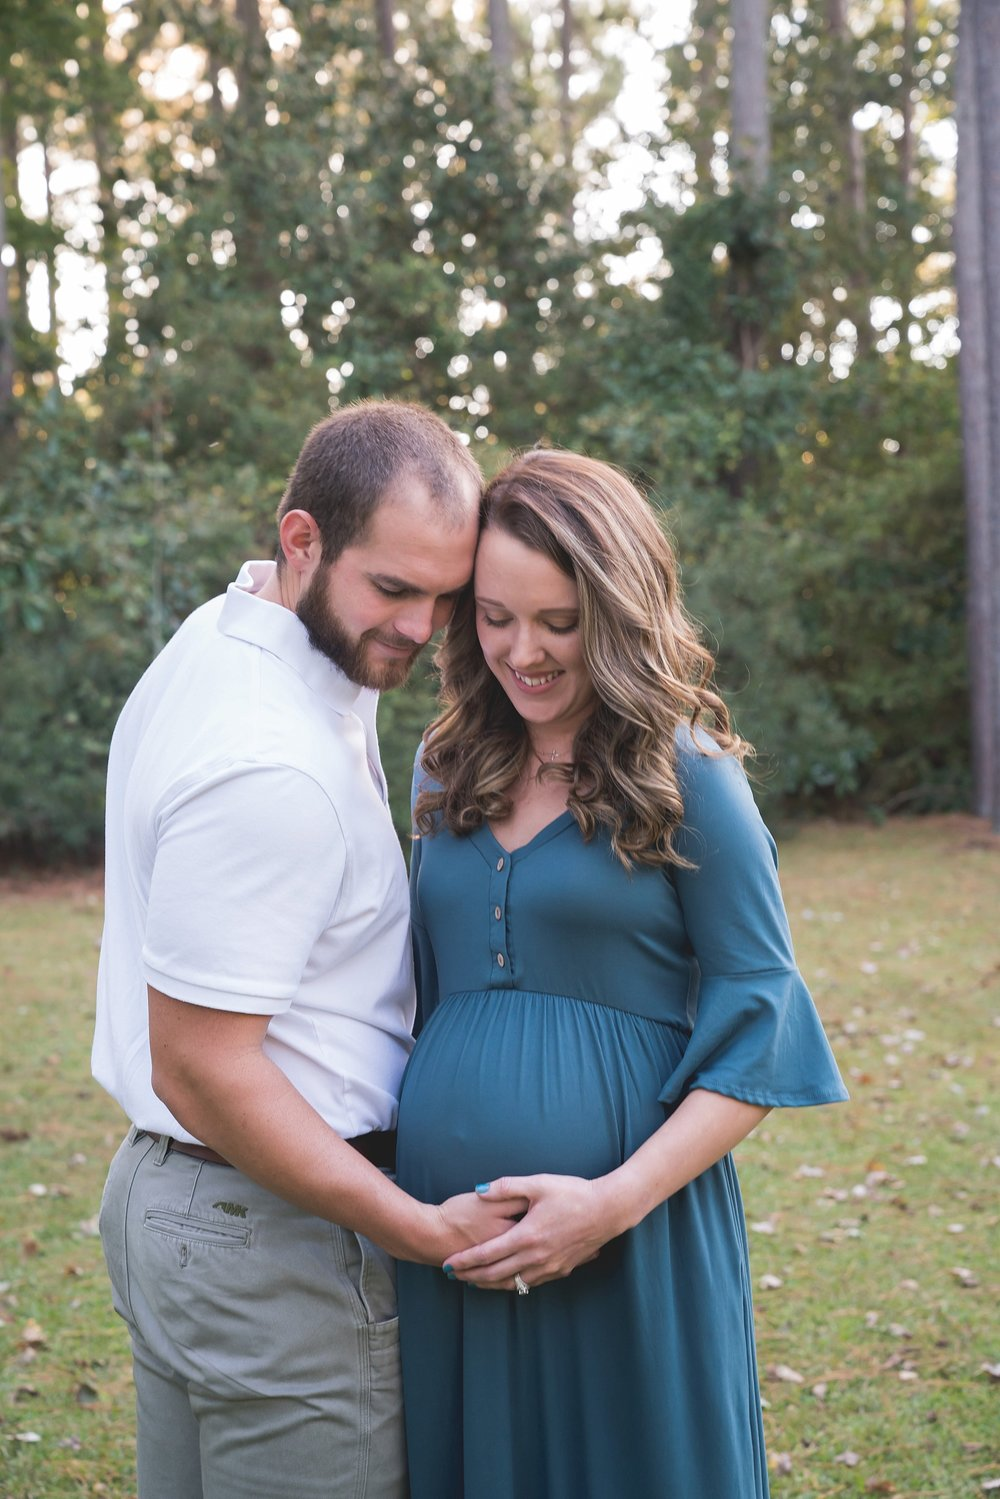 Farmville-NC-Maternity-Photographer-056.jpg